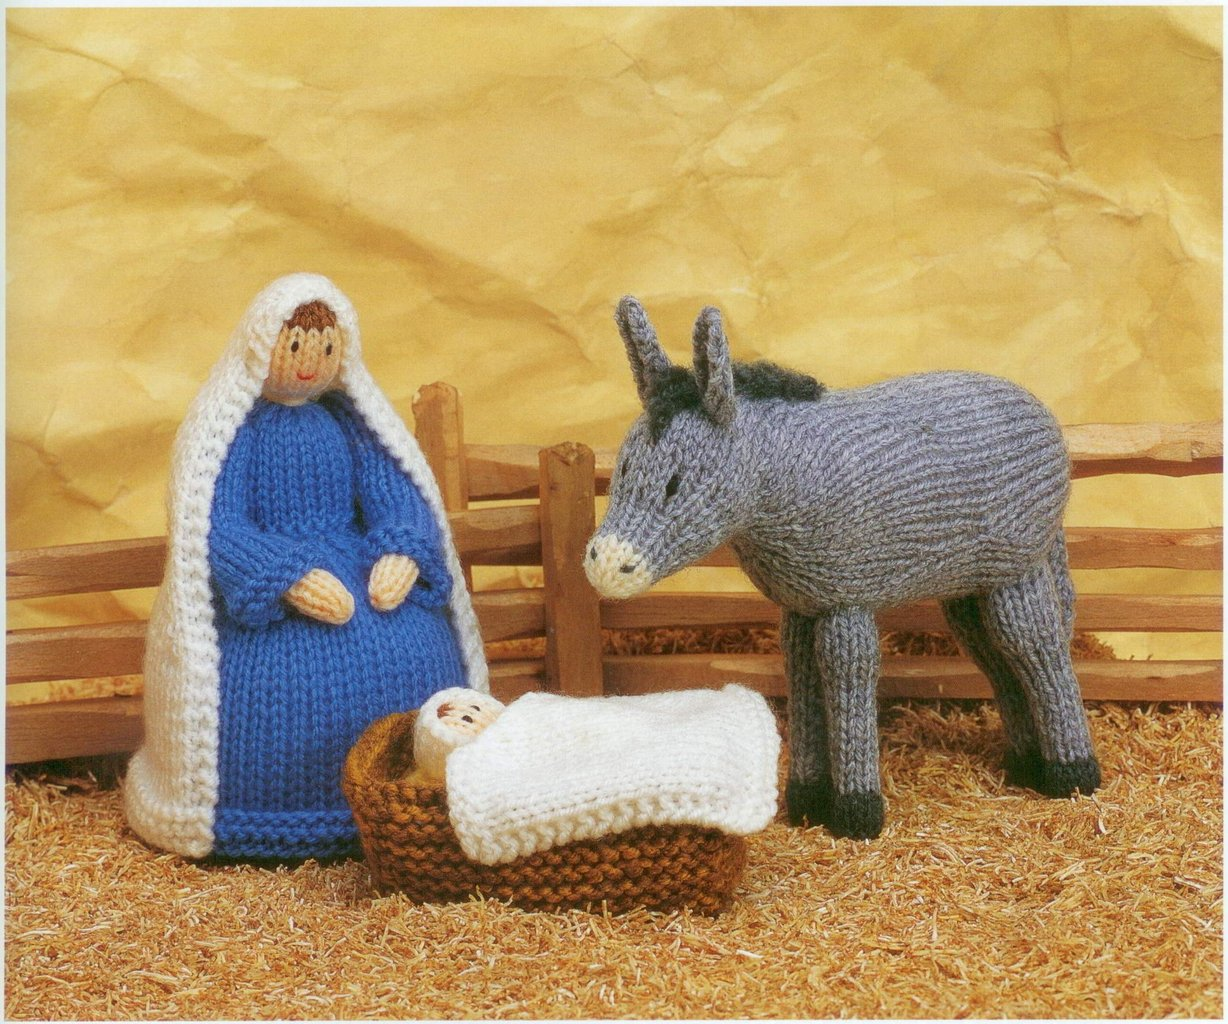 Knitting Patterns Toys Jean Greenhowe : Jean greenhowe christmas treasures knitting pattern book